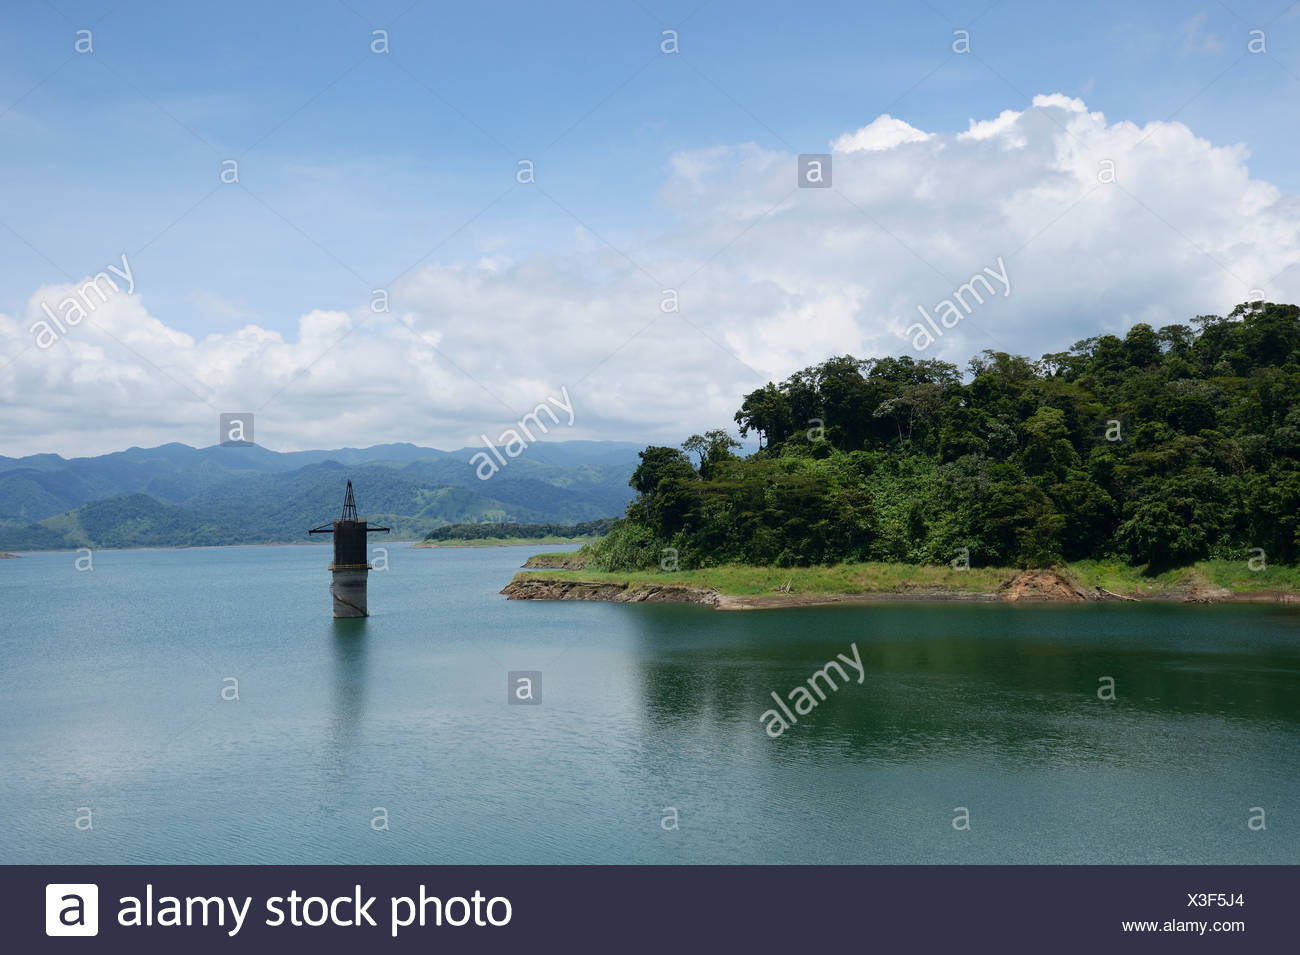 Arenal dam at the foot of the Arenal volcano, La Fortuna, Costa Rica, Central America - Stock Image